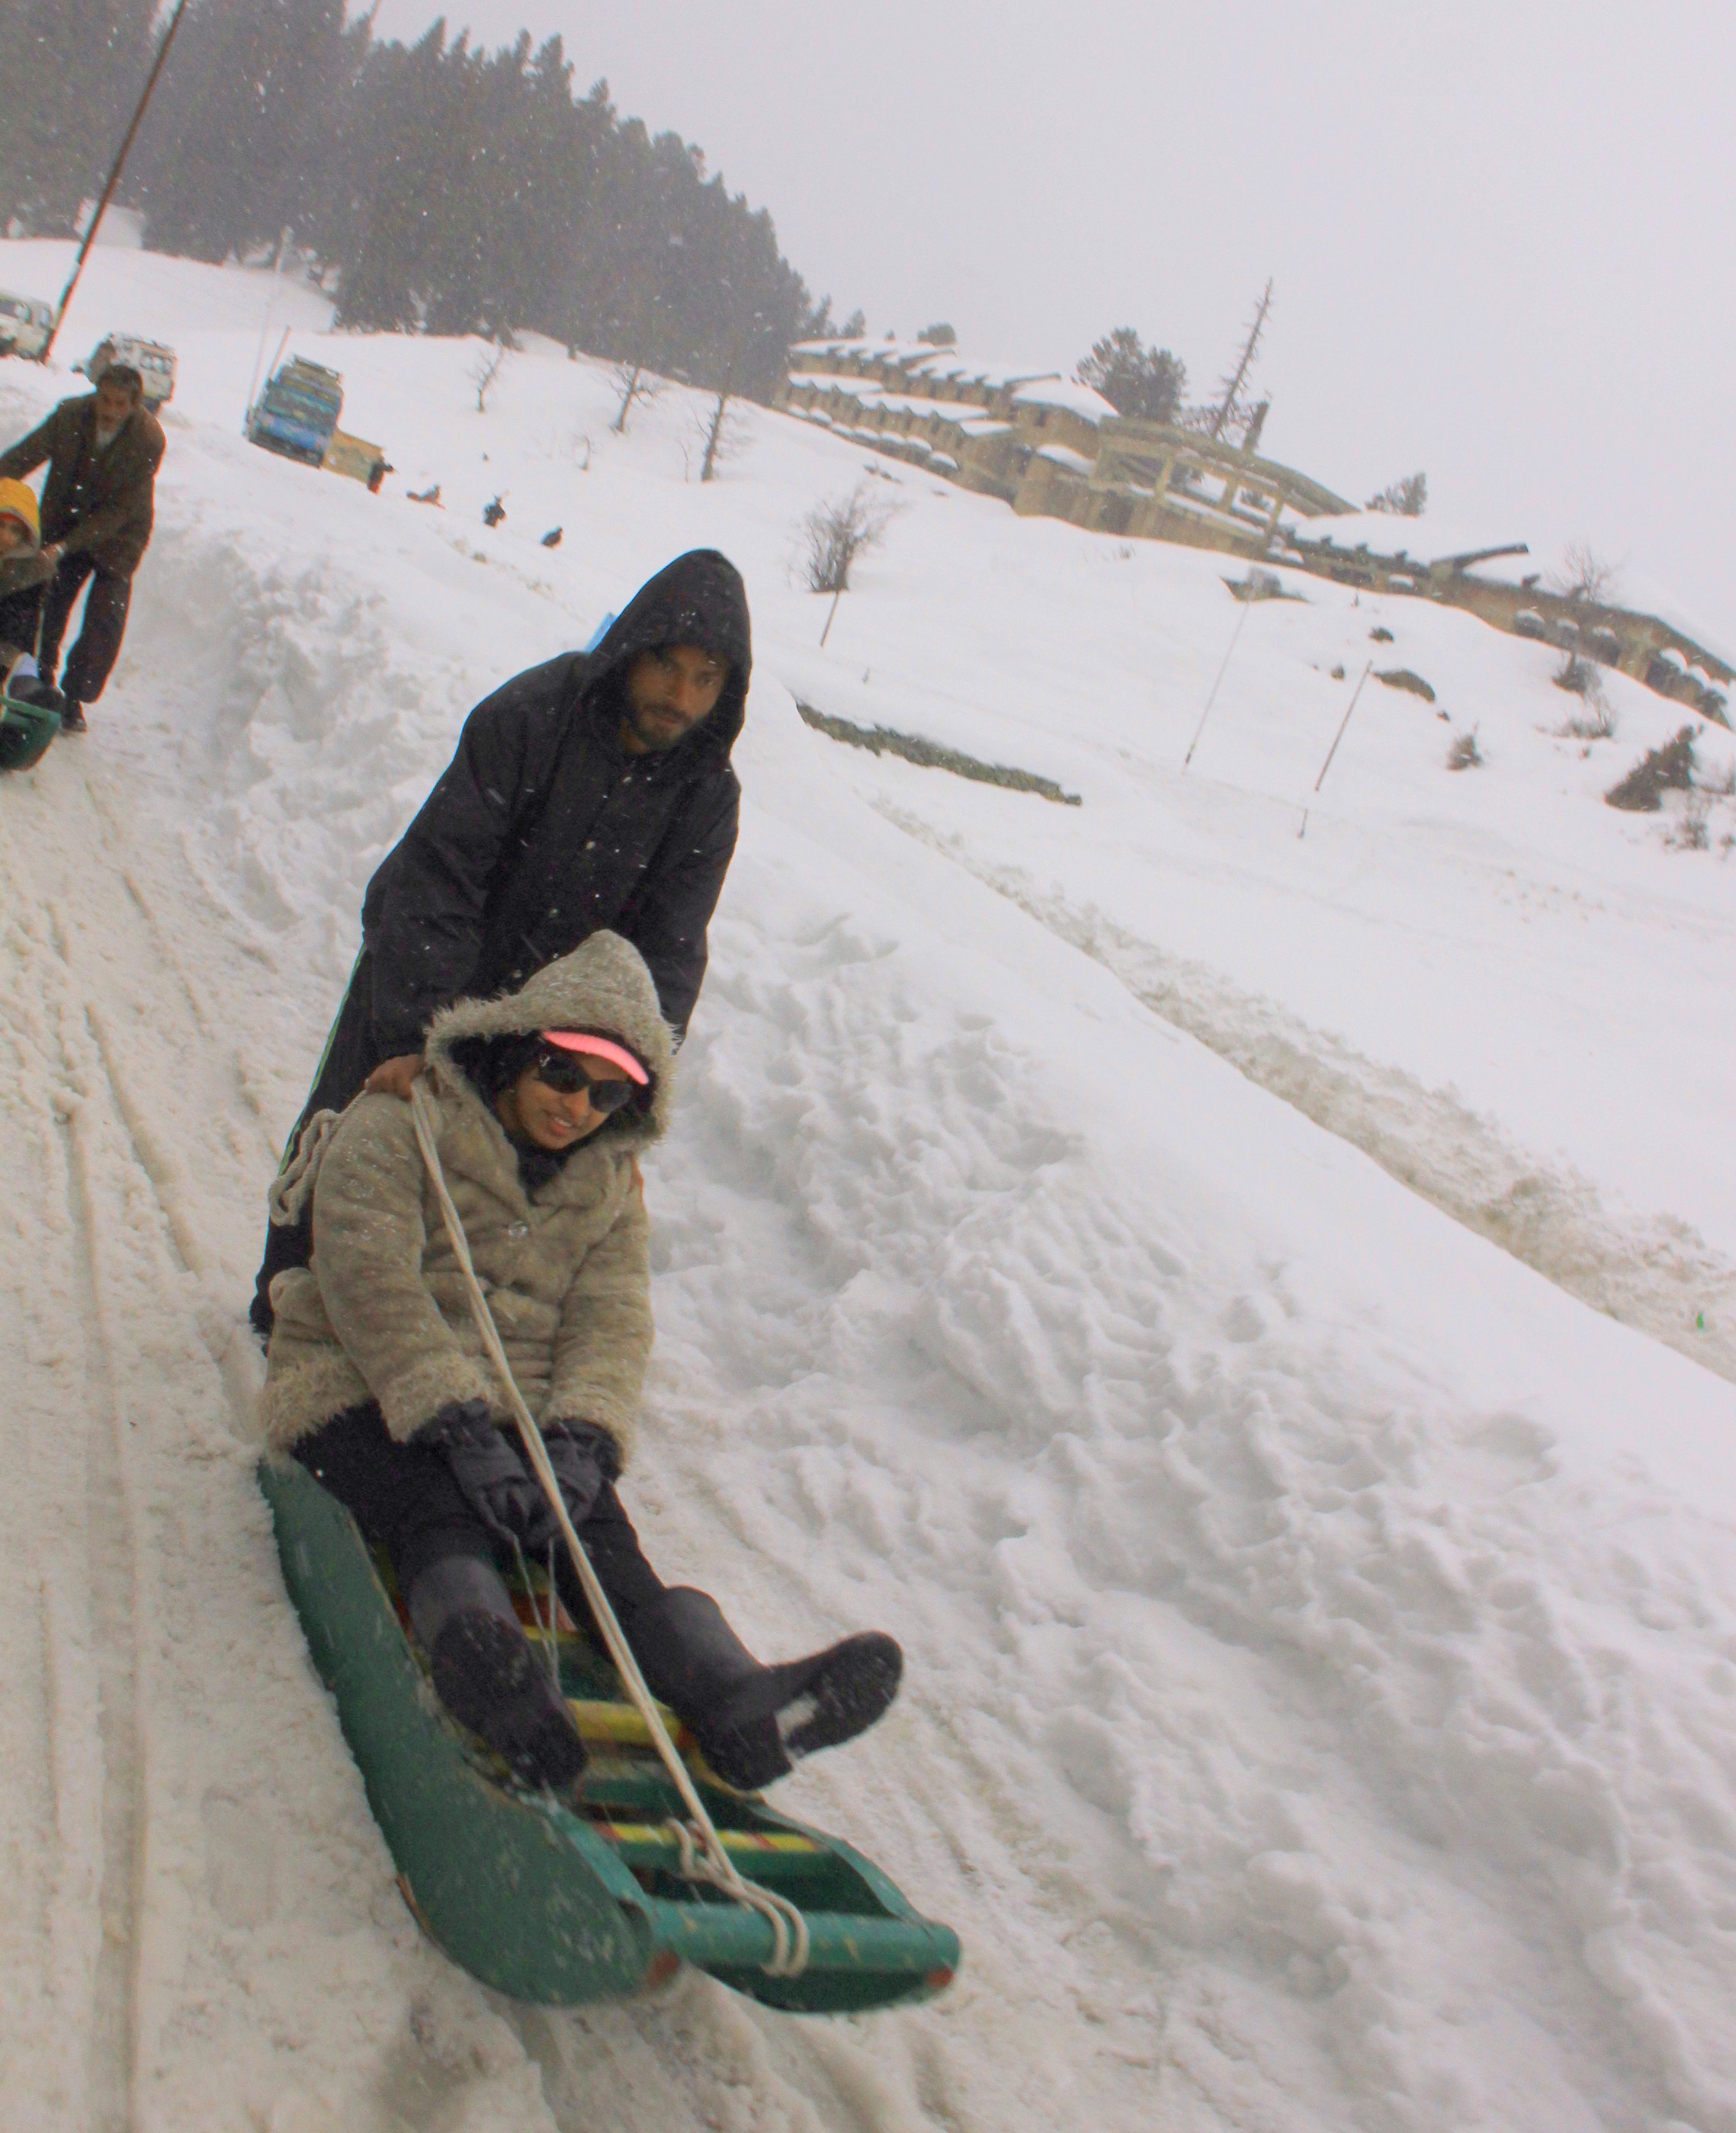 Sledding is popular in Gulmarg winter